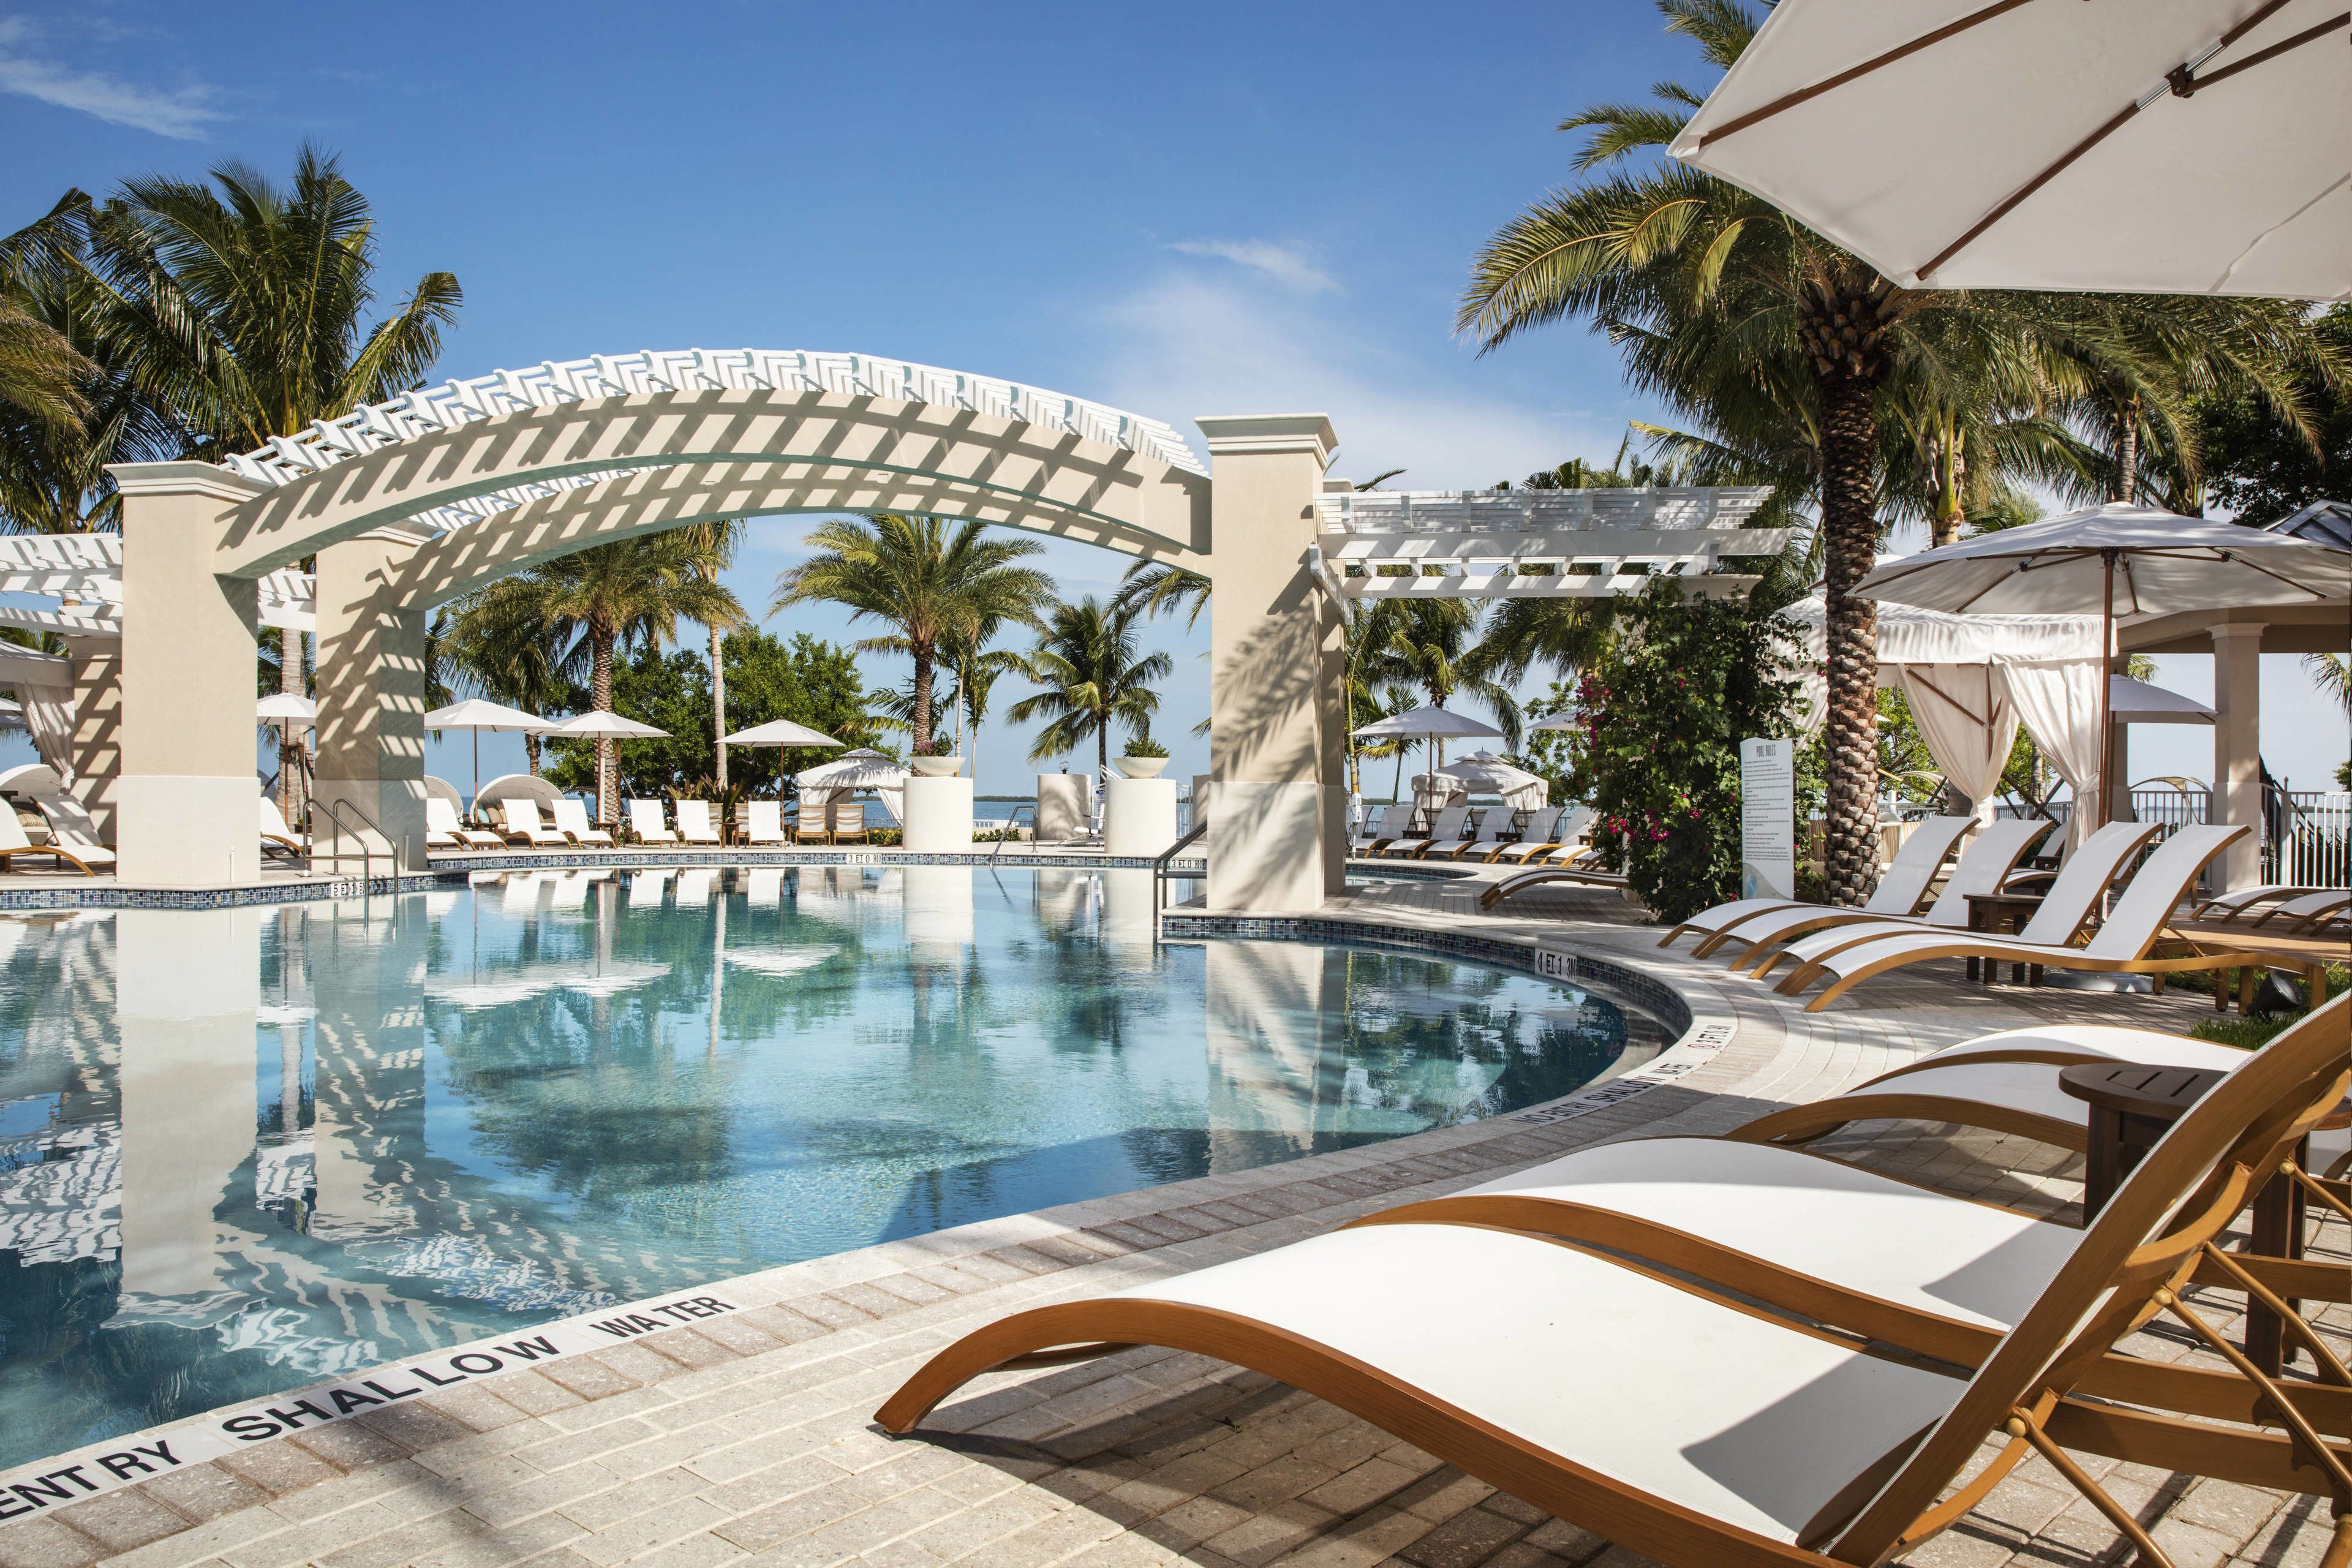 Courtesy of Playa Largo Resort & Spa, Autograph Collection / Expedia